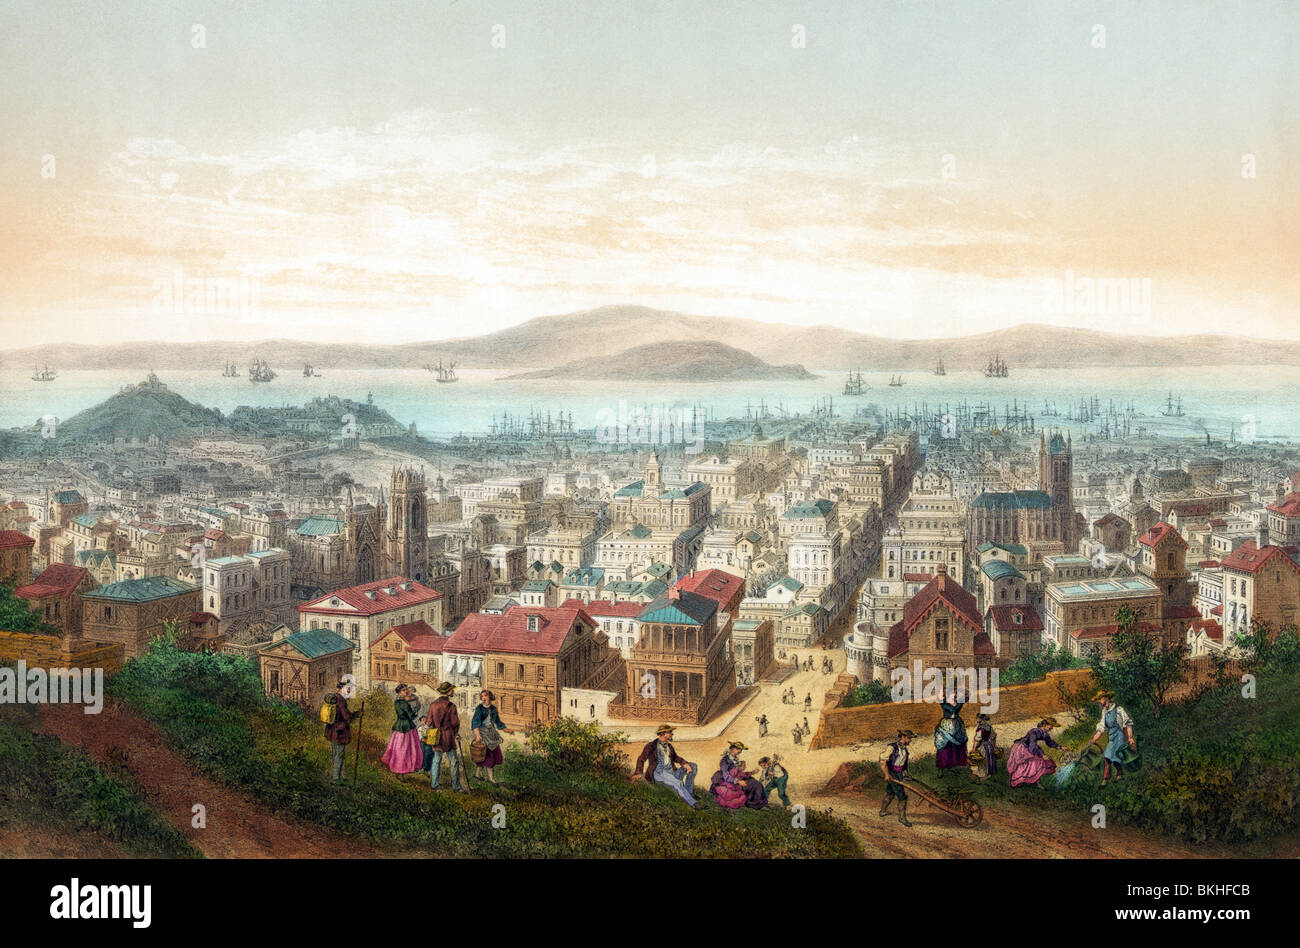 Vintage lithograph print circa 1860 of San Francisco in California, USA, as it appeared at the time. - Stock Image